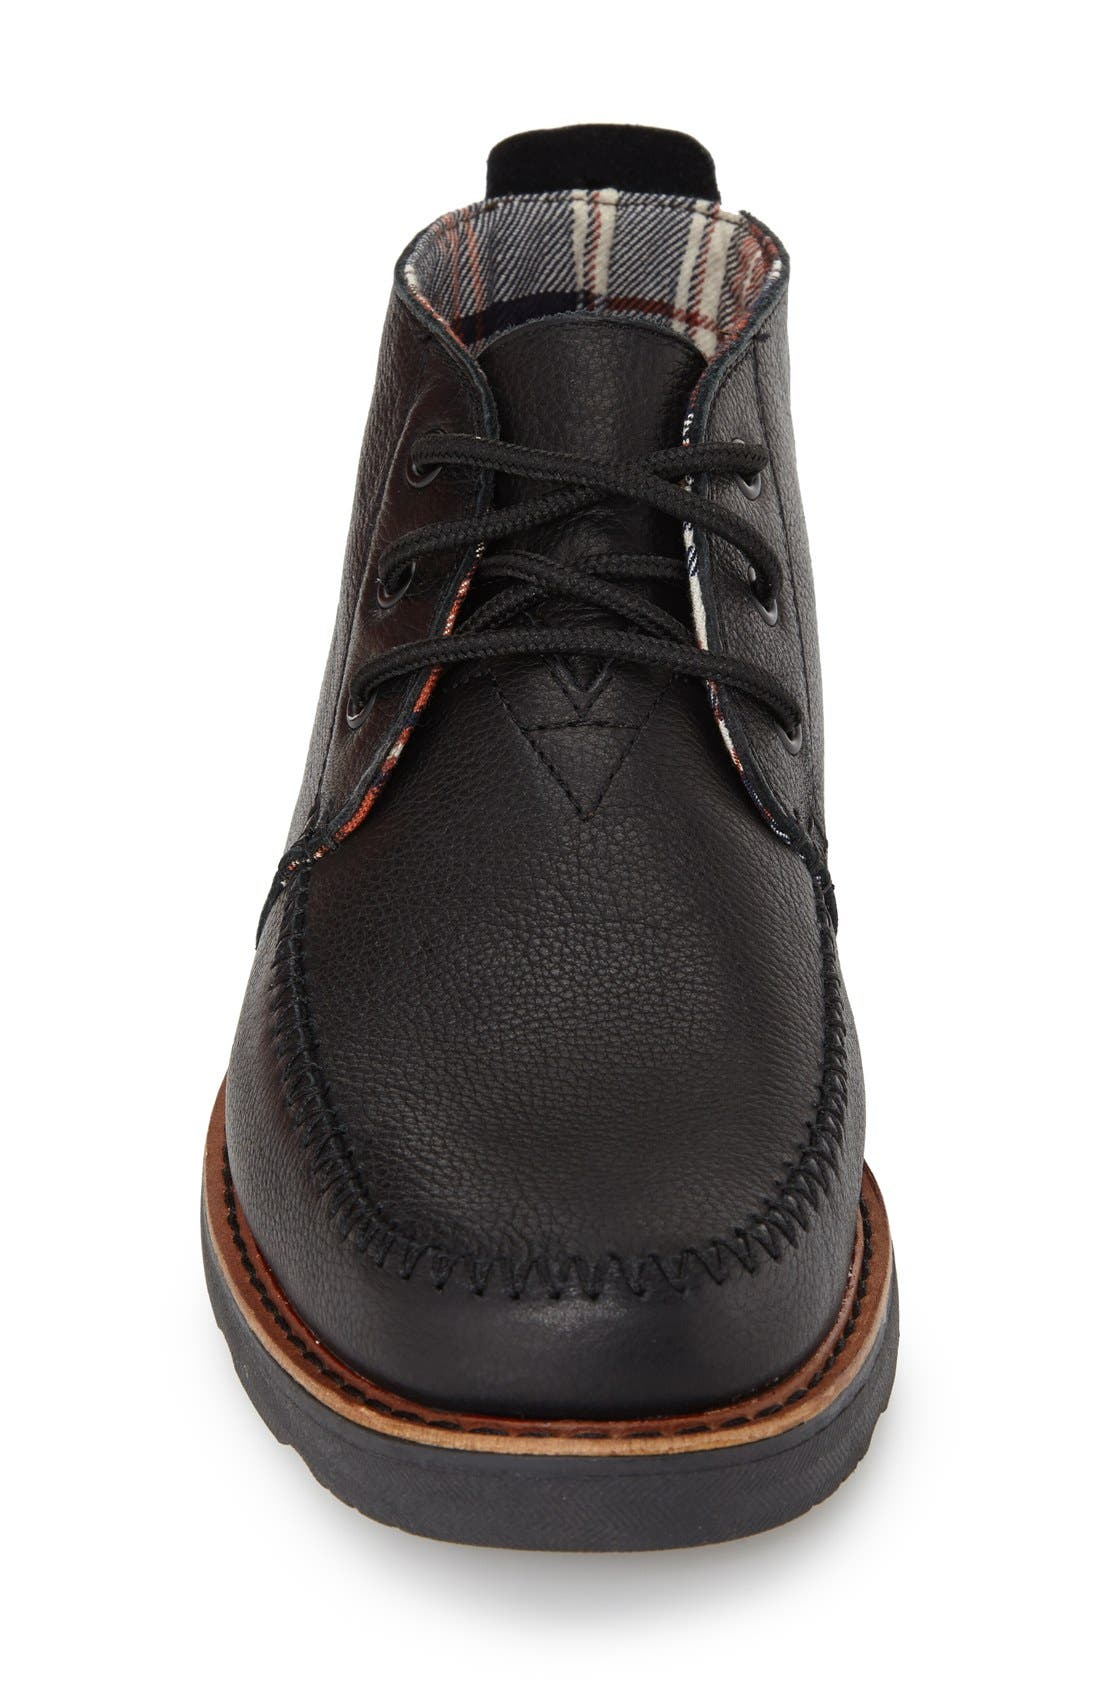 Waterproof Chukka Boot,                             Alternate thumbnail 3, color,                             001